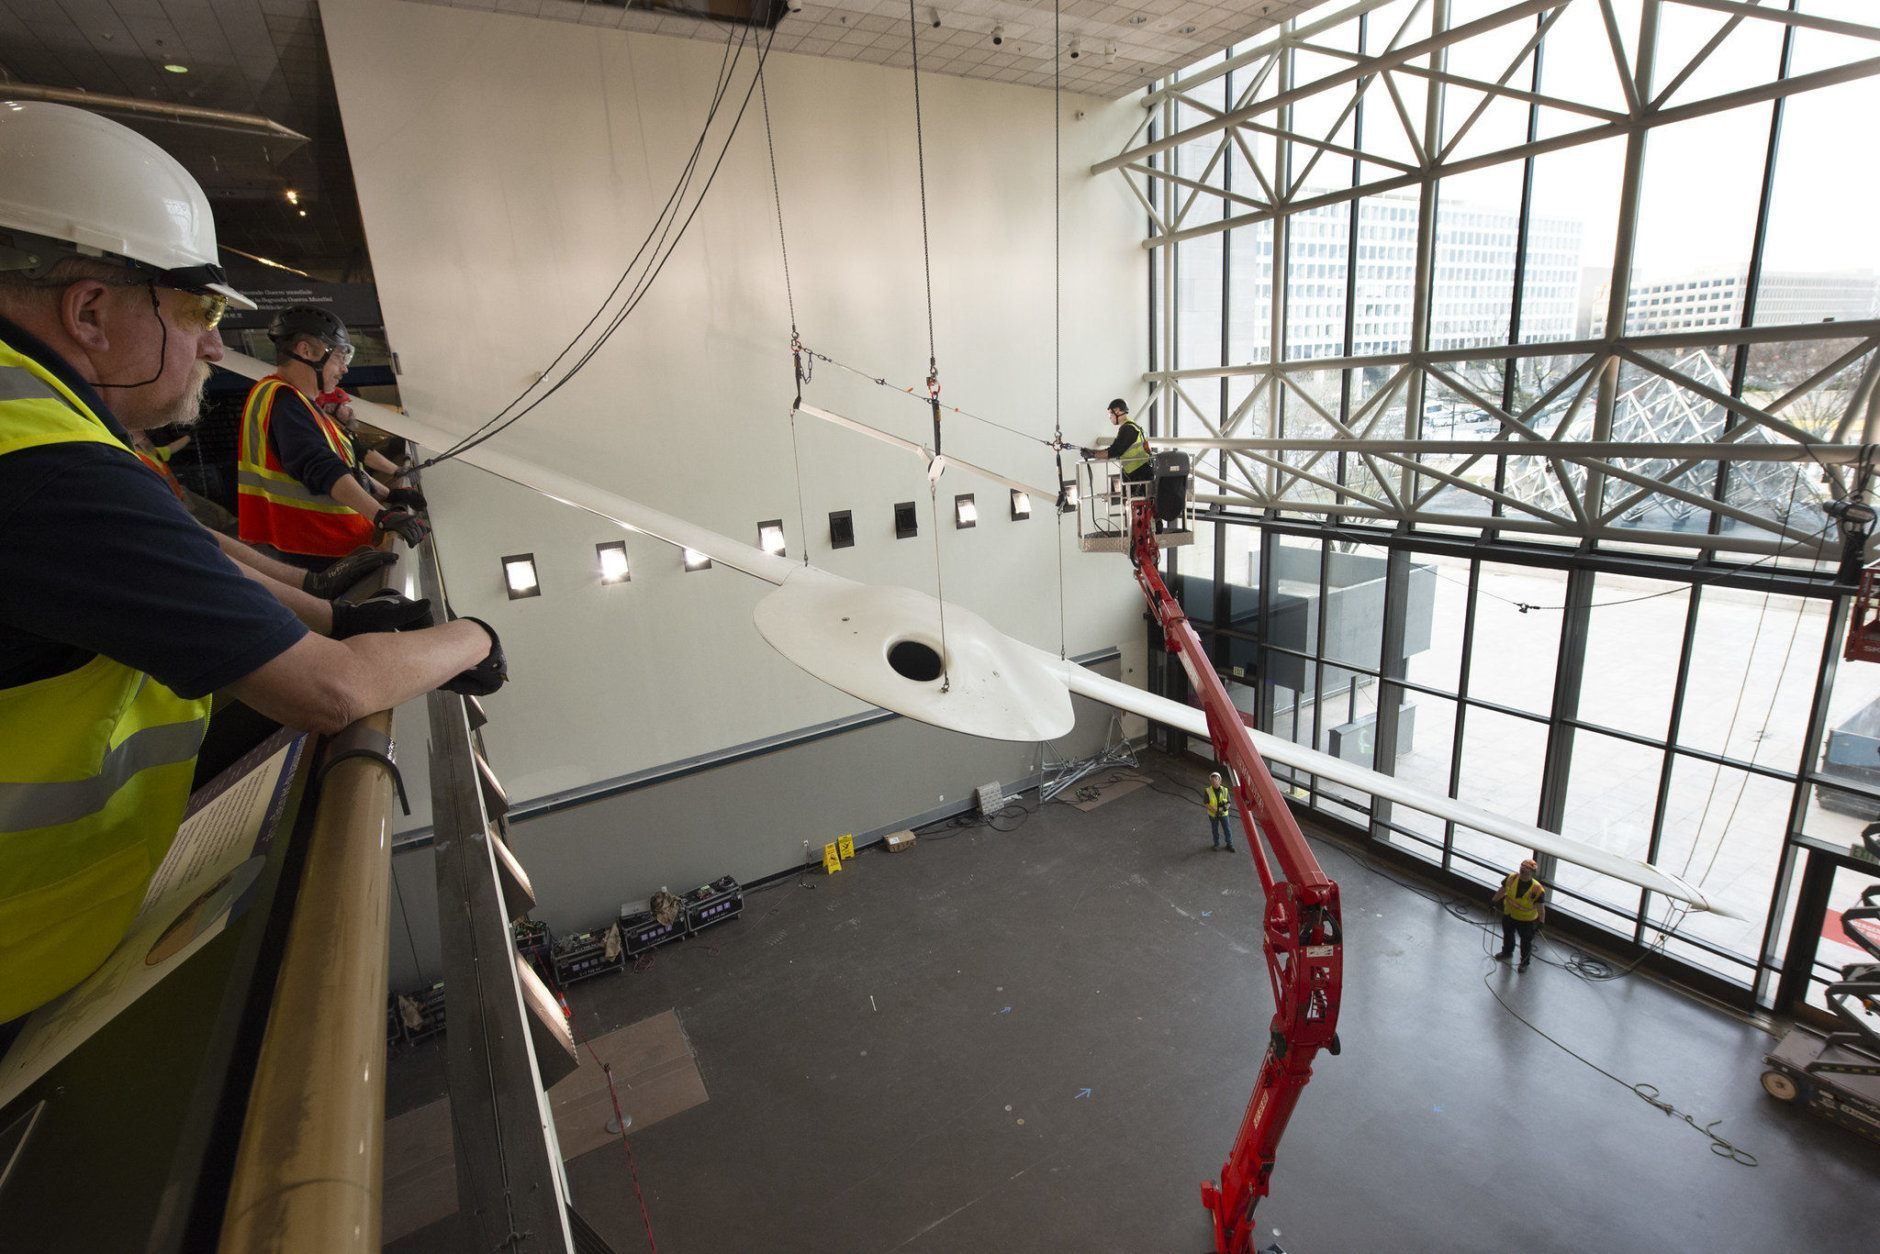 The Lockheed Martin/Boeing RQ-3A DarkStar drone is lowered in the Military Unmanned Aerial Vehicles exhibit during west end renovation of the National Air and Space Museum in Washington, DC, March 7, 2019. (Smithsonian photo by Mark Avino/Courtesy Smithsonian's National Air and Space Museum)